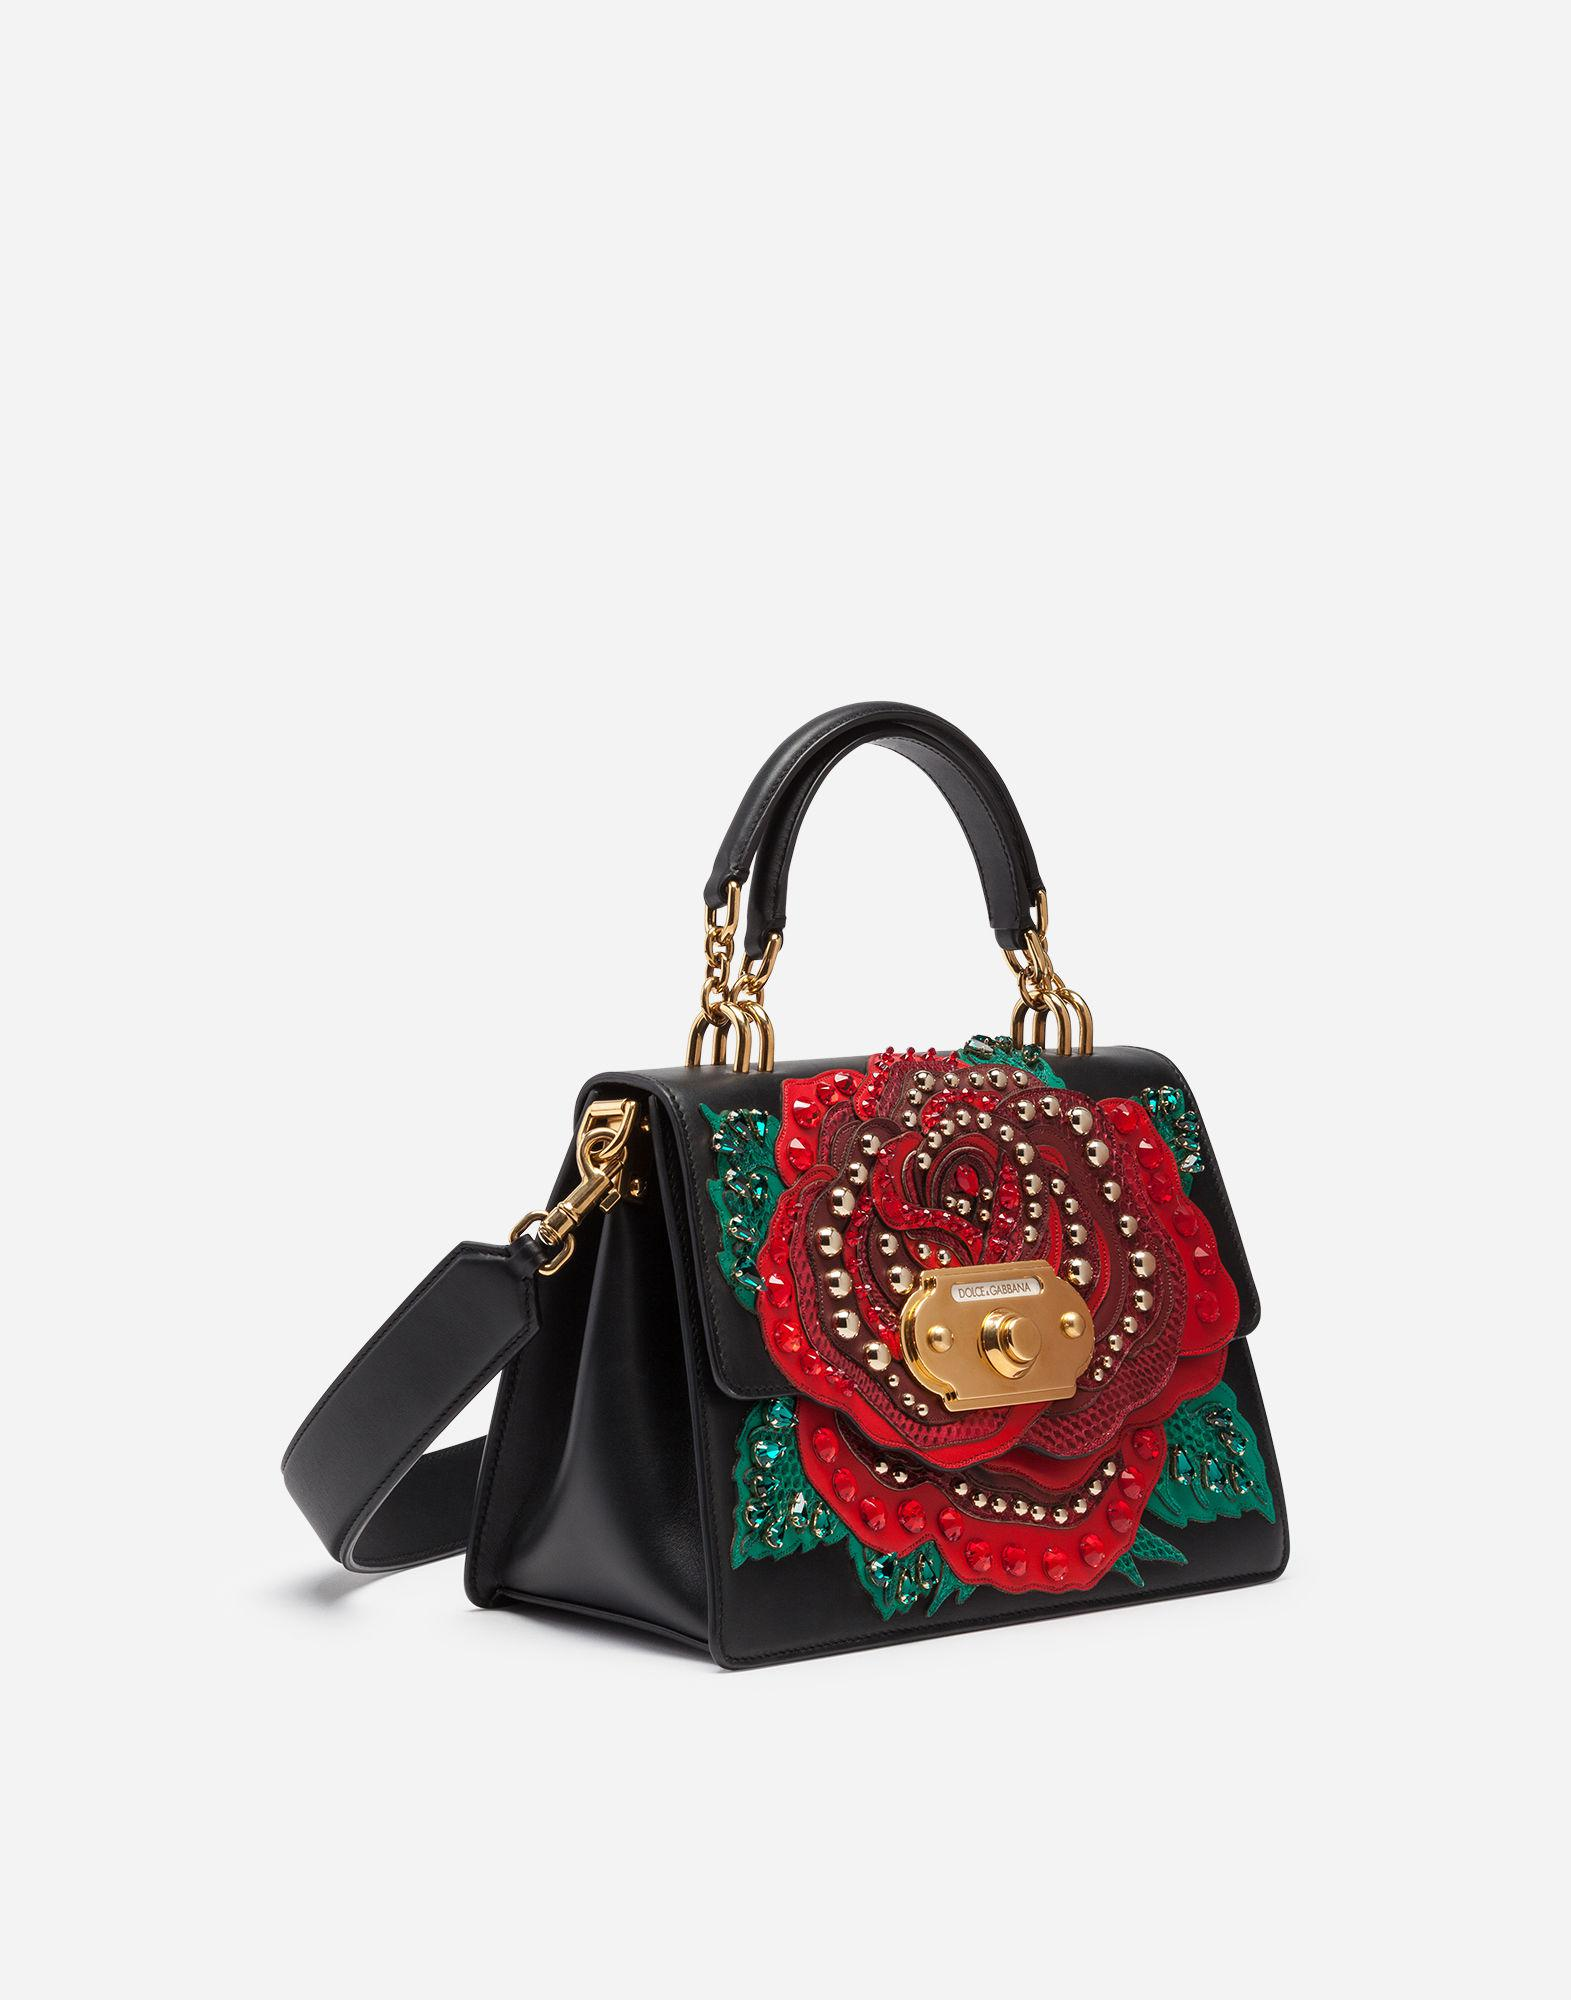 2f2d7ef4452 Lyst - Dolce   Gabbana Welcome Shoulder Bag In Calfskin And Appliqués in  Black